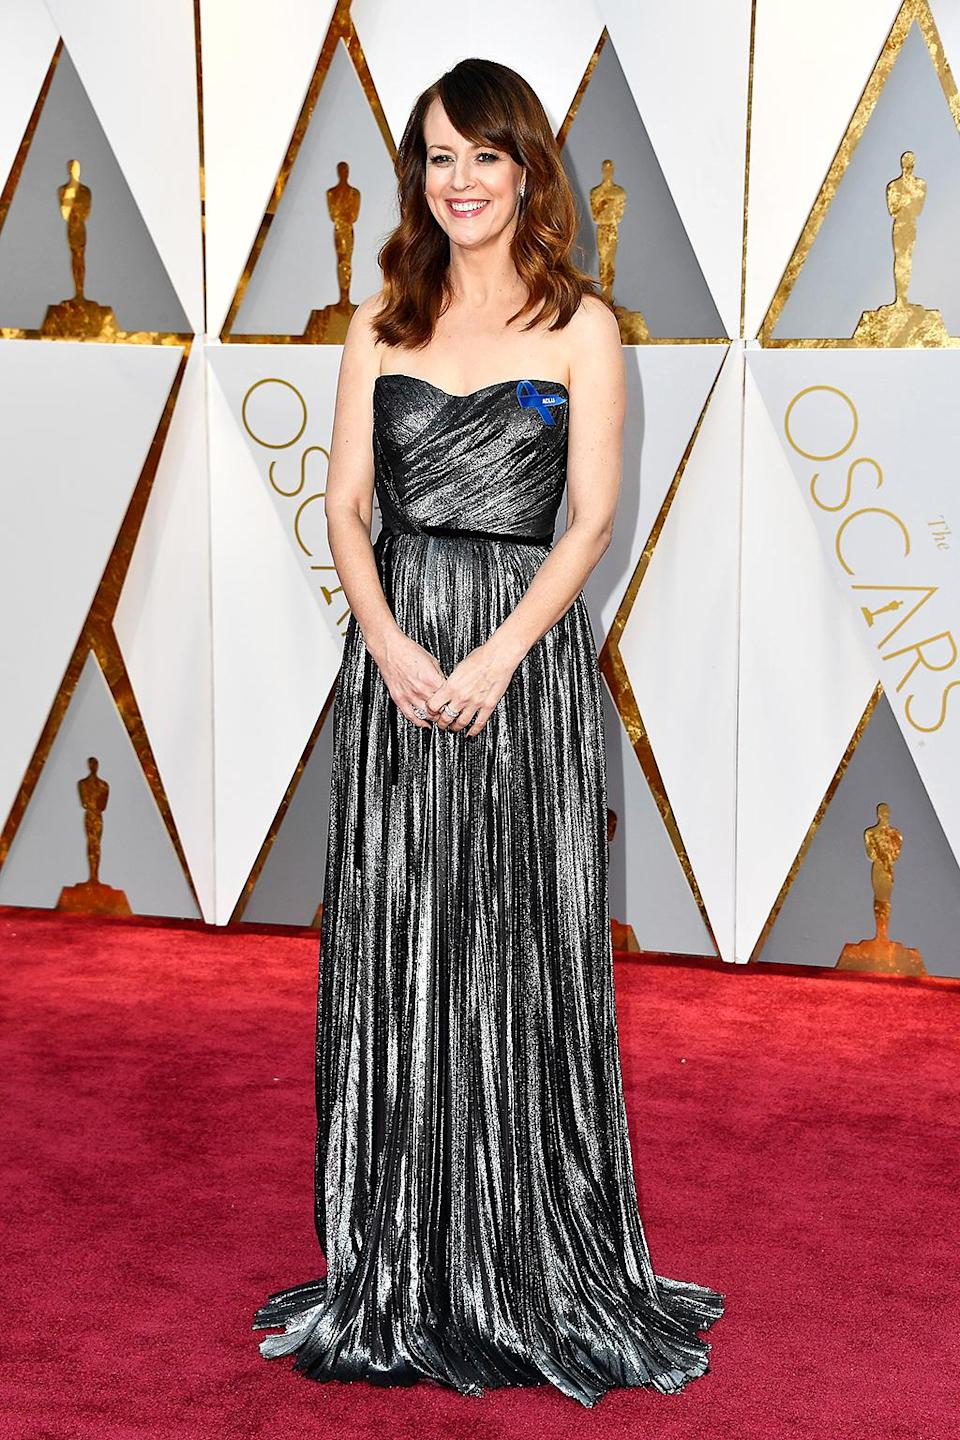 <p>Actor Rosemarie DeWitt attends the 89th Annual Academy Awards at Hollywood & Highland Center on February 26, 2017 in Hollywood, California. (Photo by Frazer Harrison/Getty Images) </p>